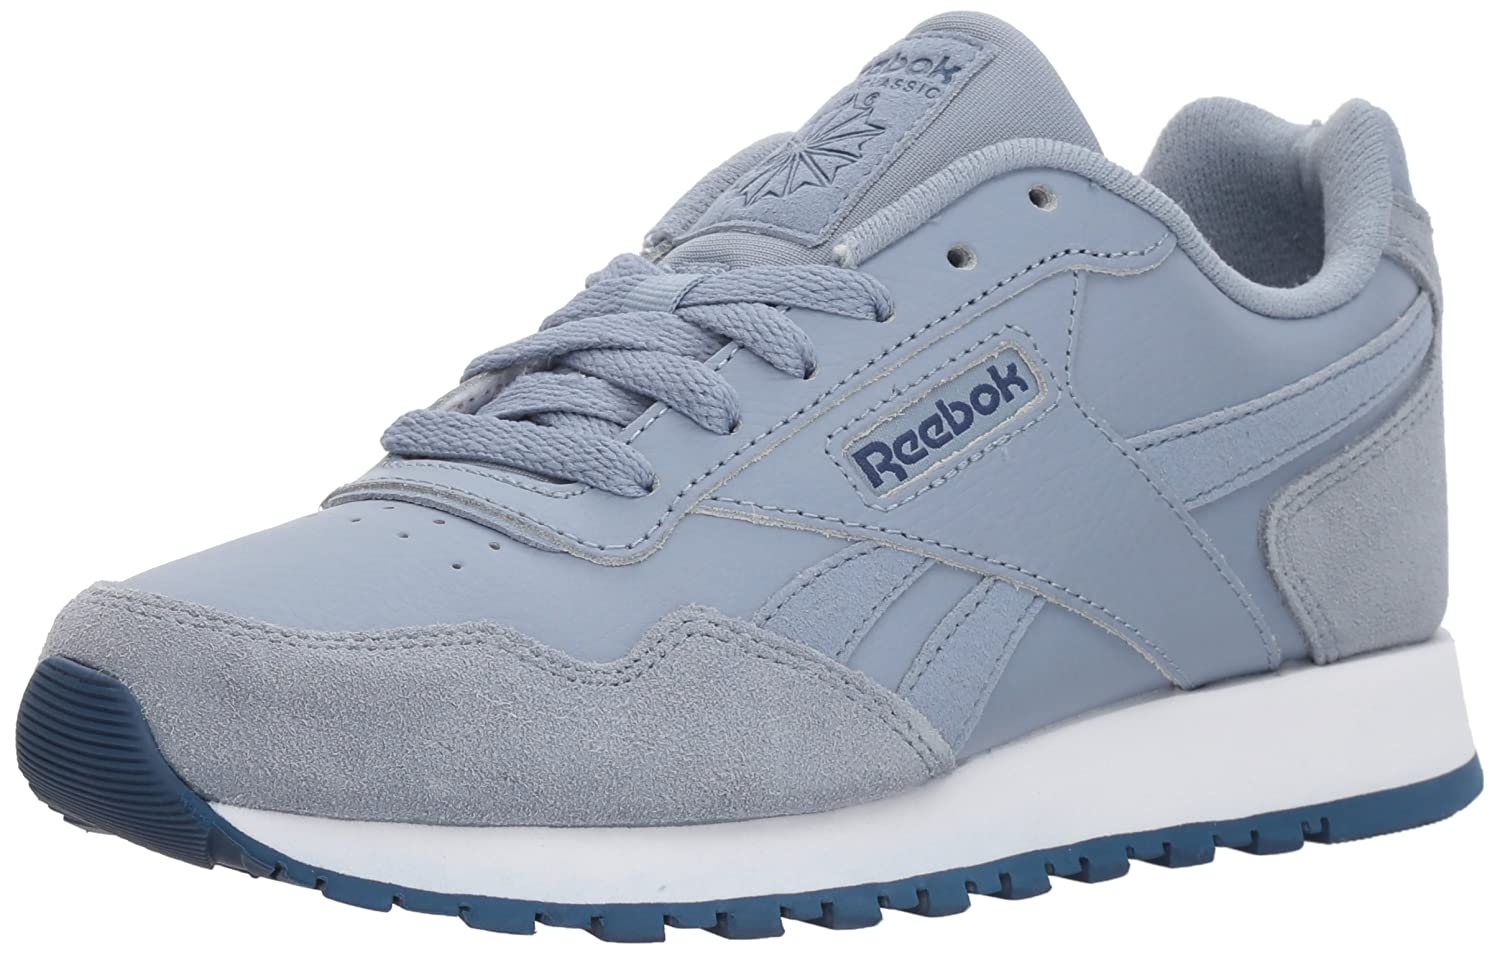 Reebok Women's Classic US|Rain Harman Run Sneaker B072JCKMKX 6.5 B(M) US|Rain Classic Cloud/Washed Blue/White 16a461